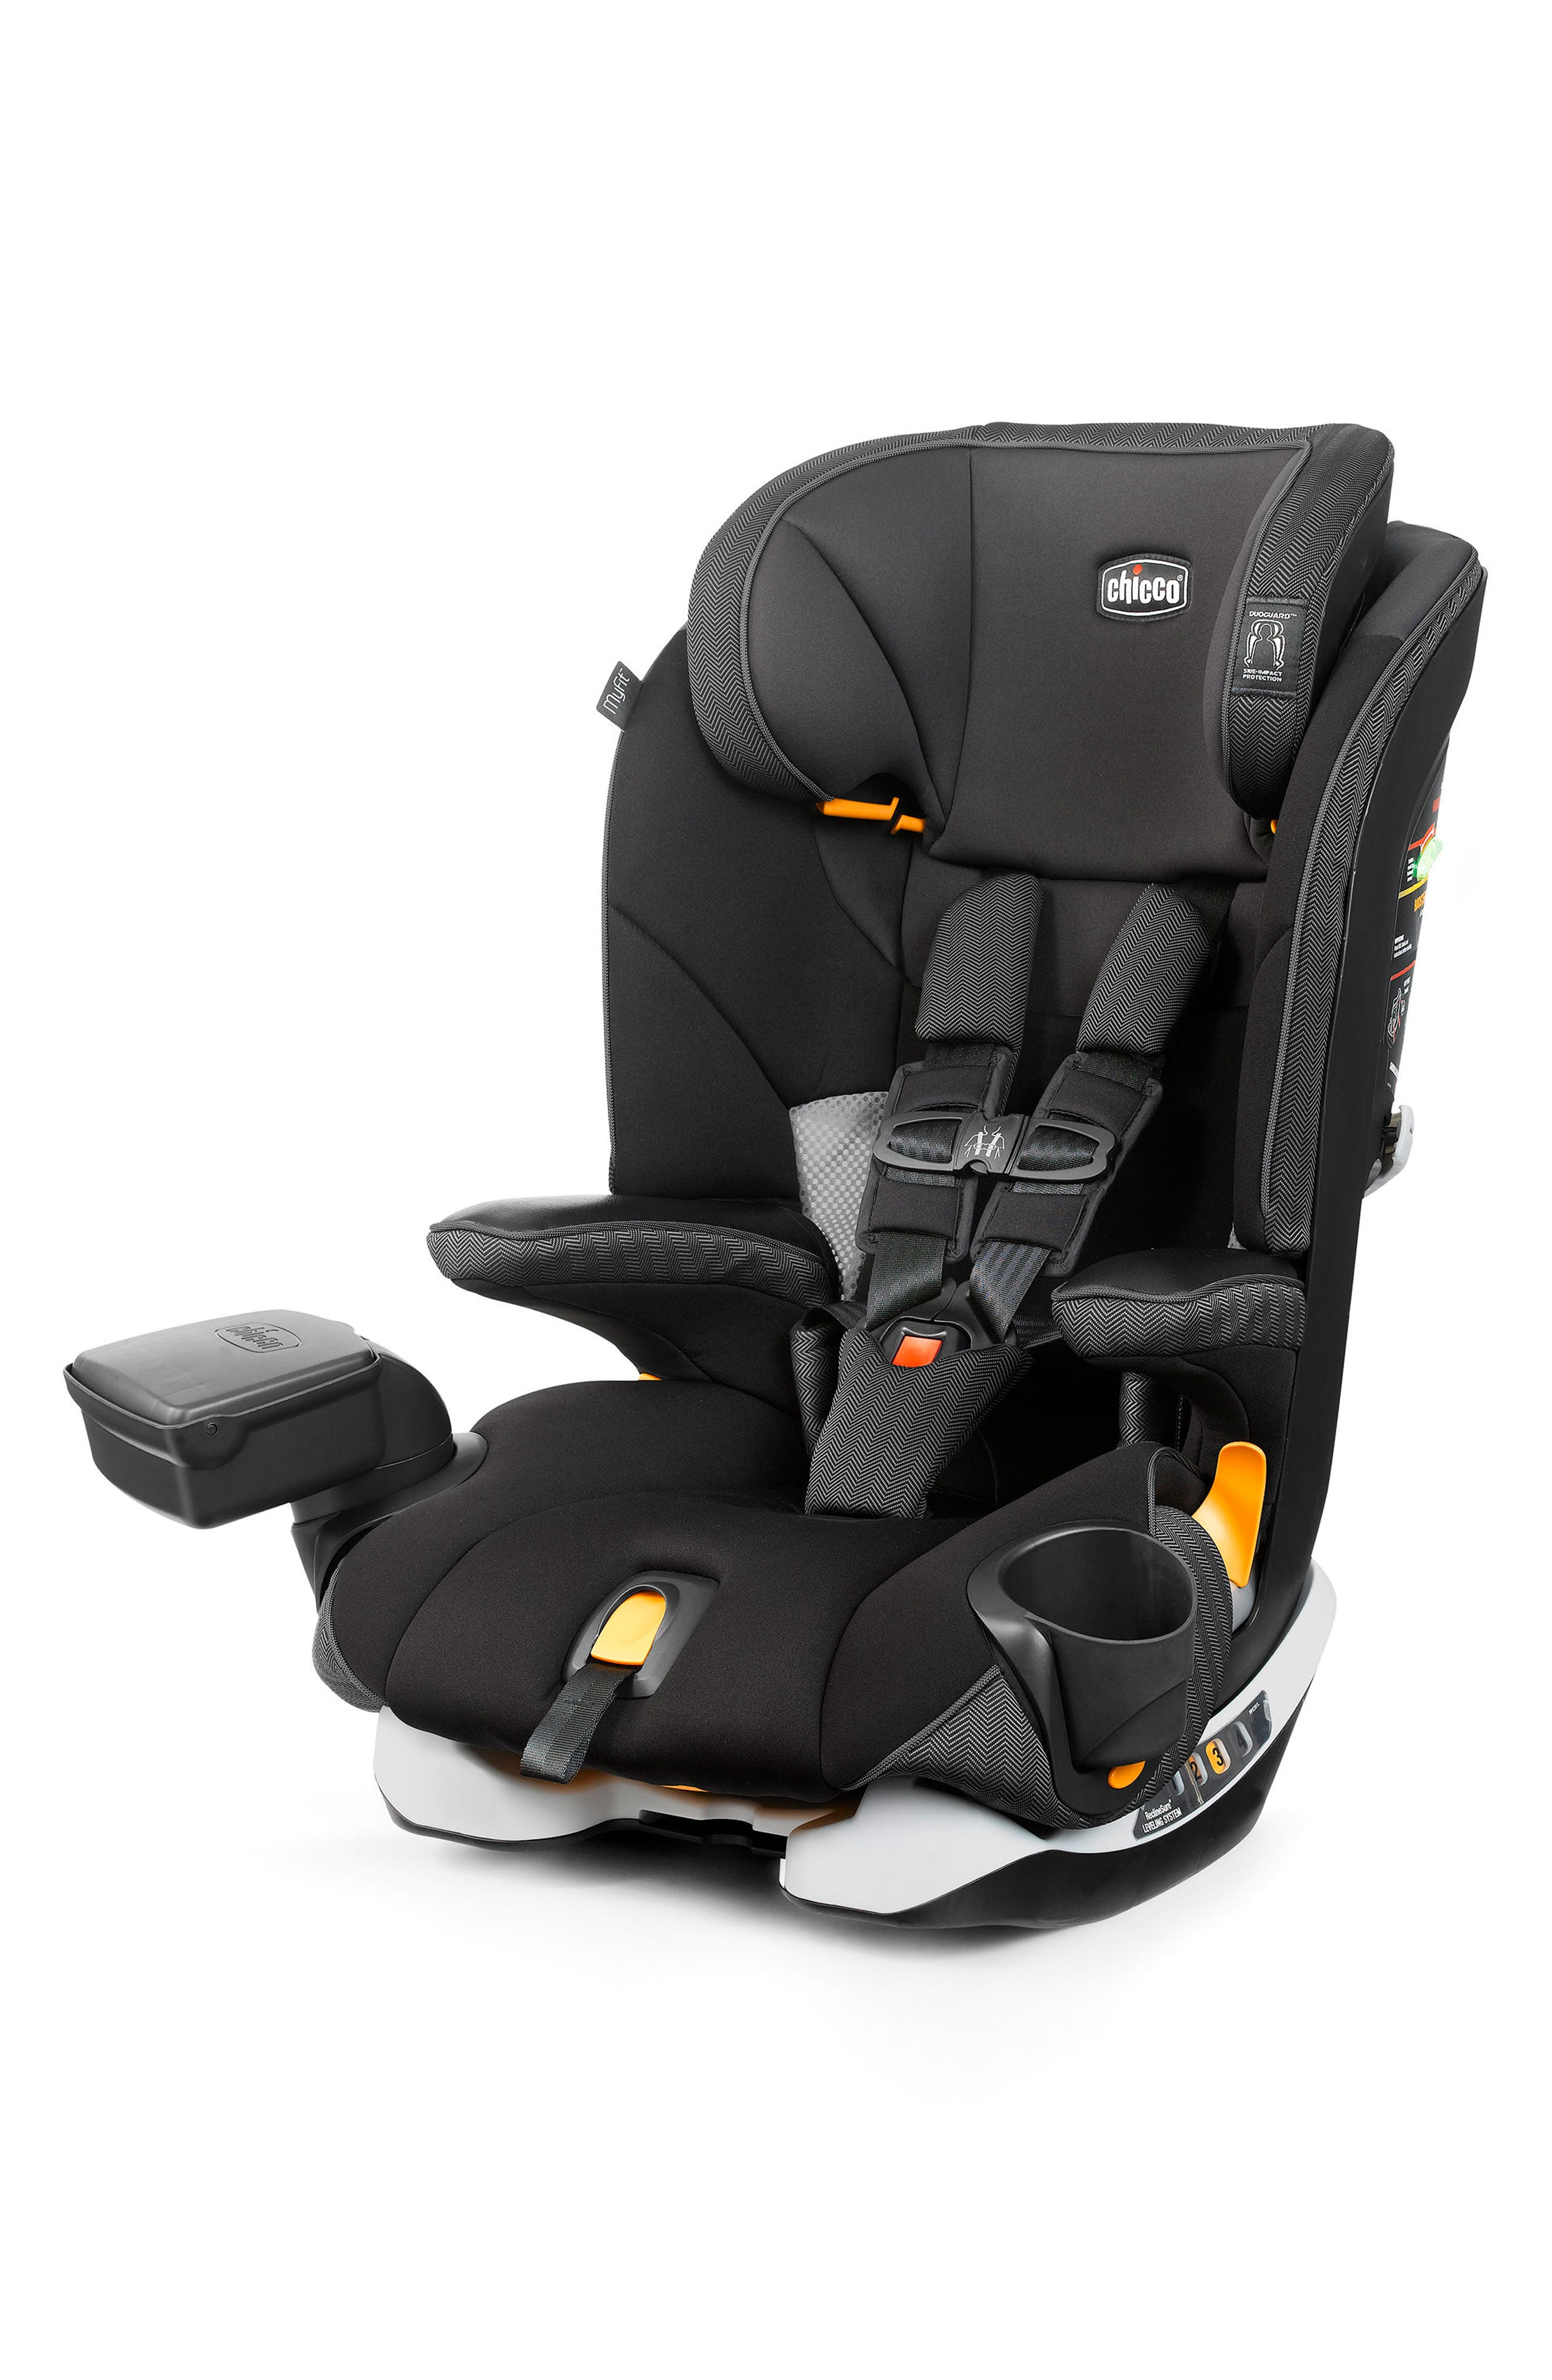 Chicco MyFit LE Convertible Harness + Booster Car Seat